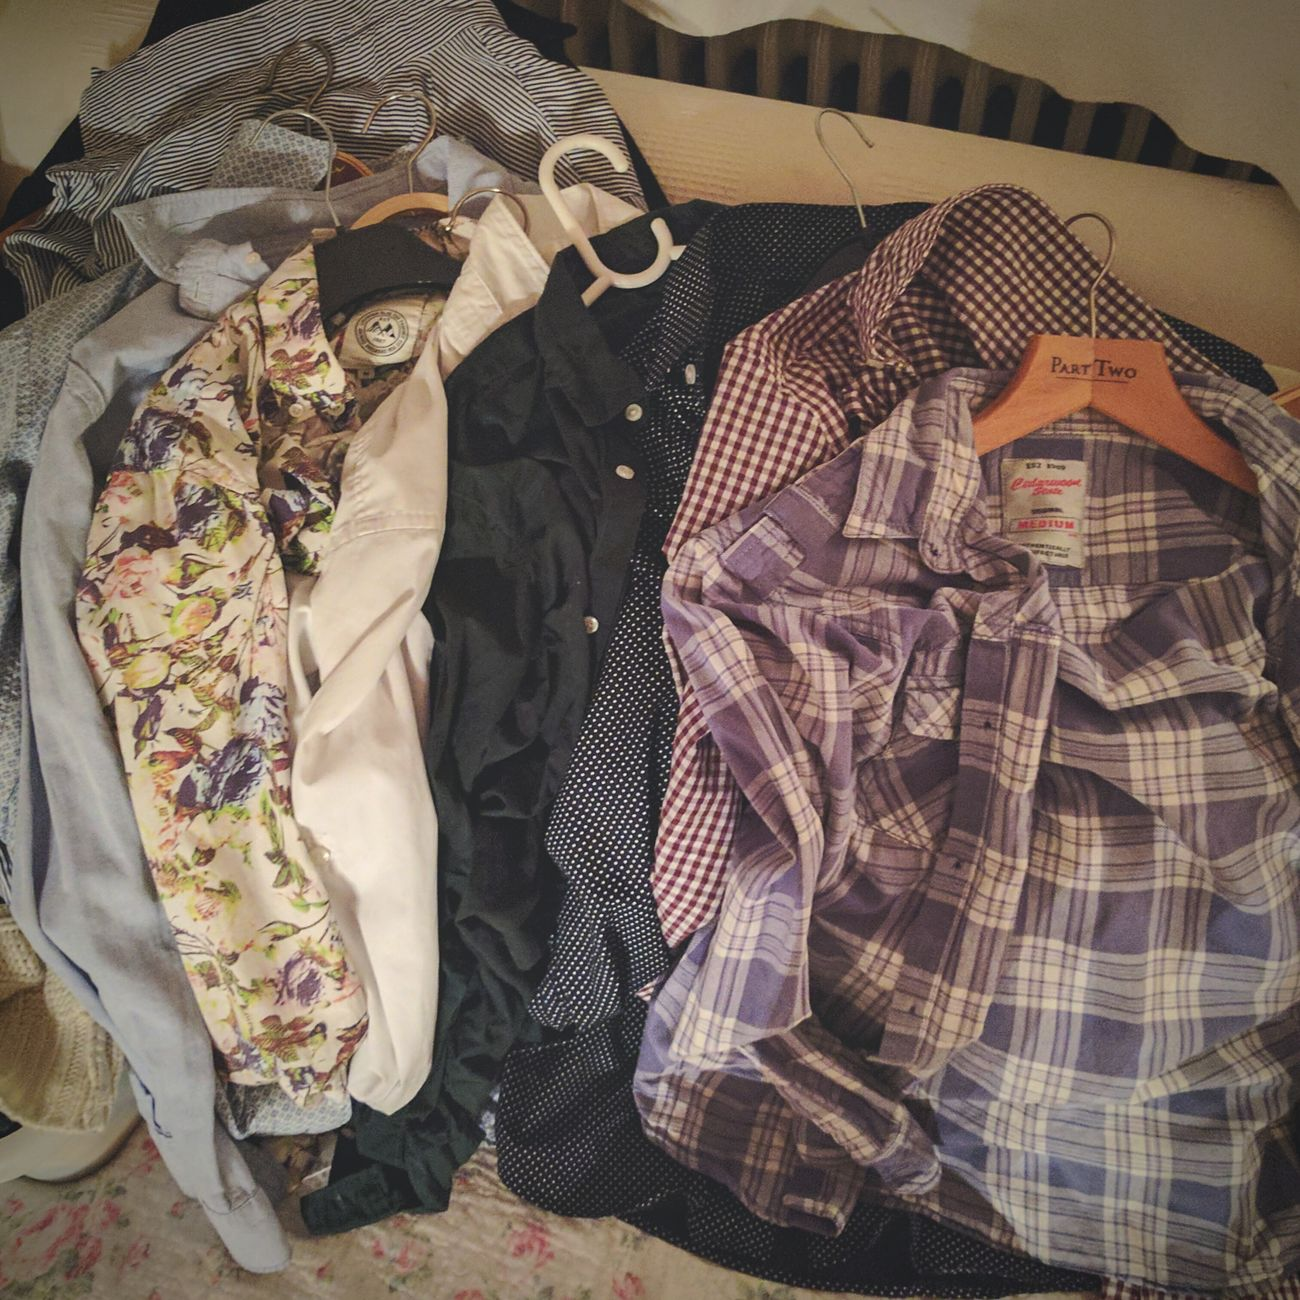 TheMinimum for holiday trip to mom's Clothing Indoors  No People Menswear Close-up Day Cristmas NewYear Mom Shirts 1foreveryoccasion First Eyeem Photo